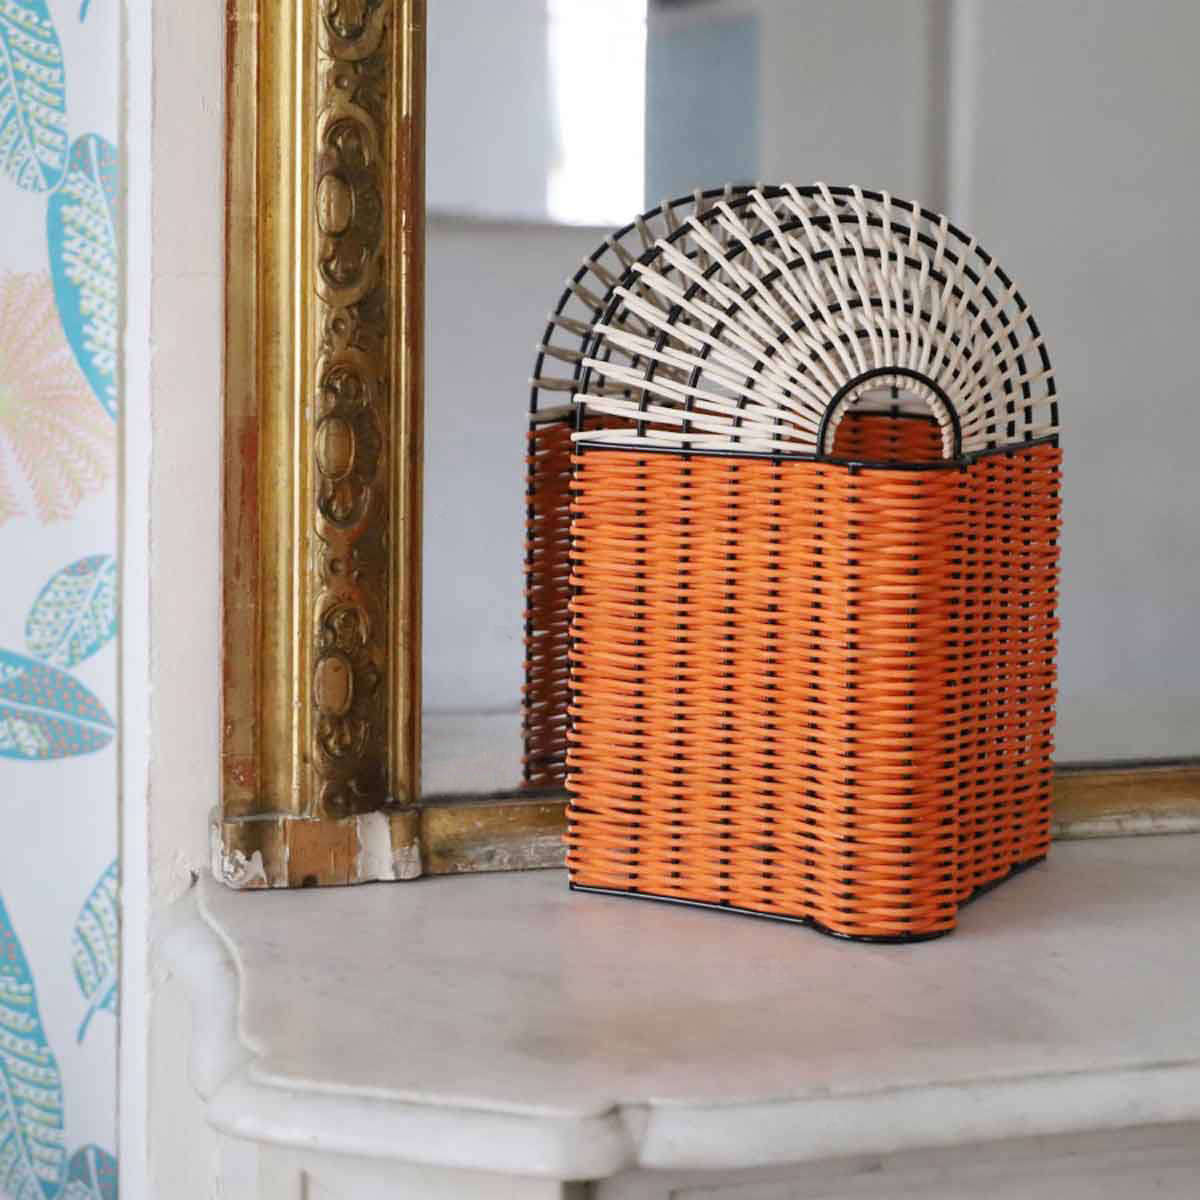 The Paon Small Lamp in Coral and Natural Rattan is €9.